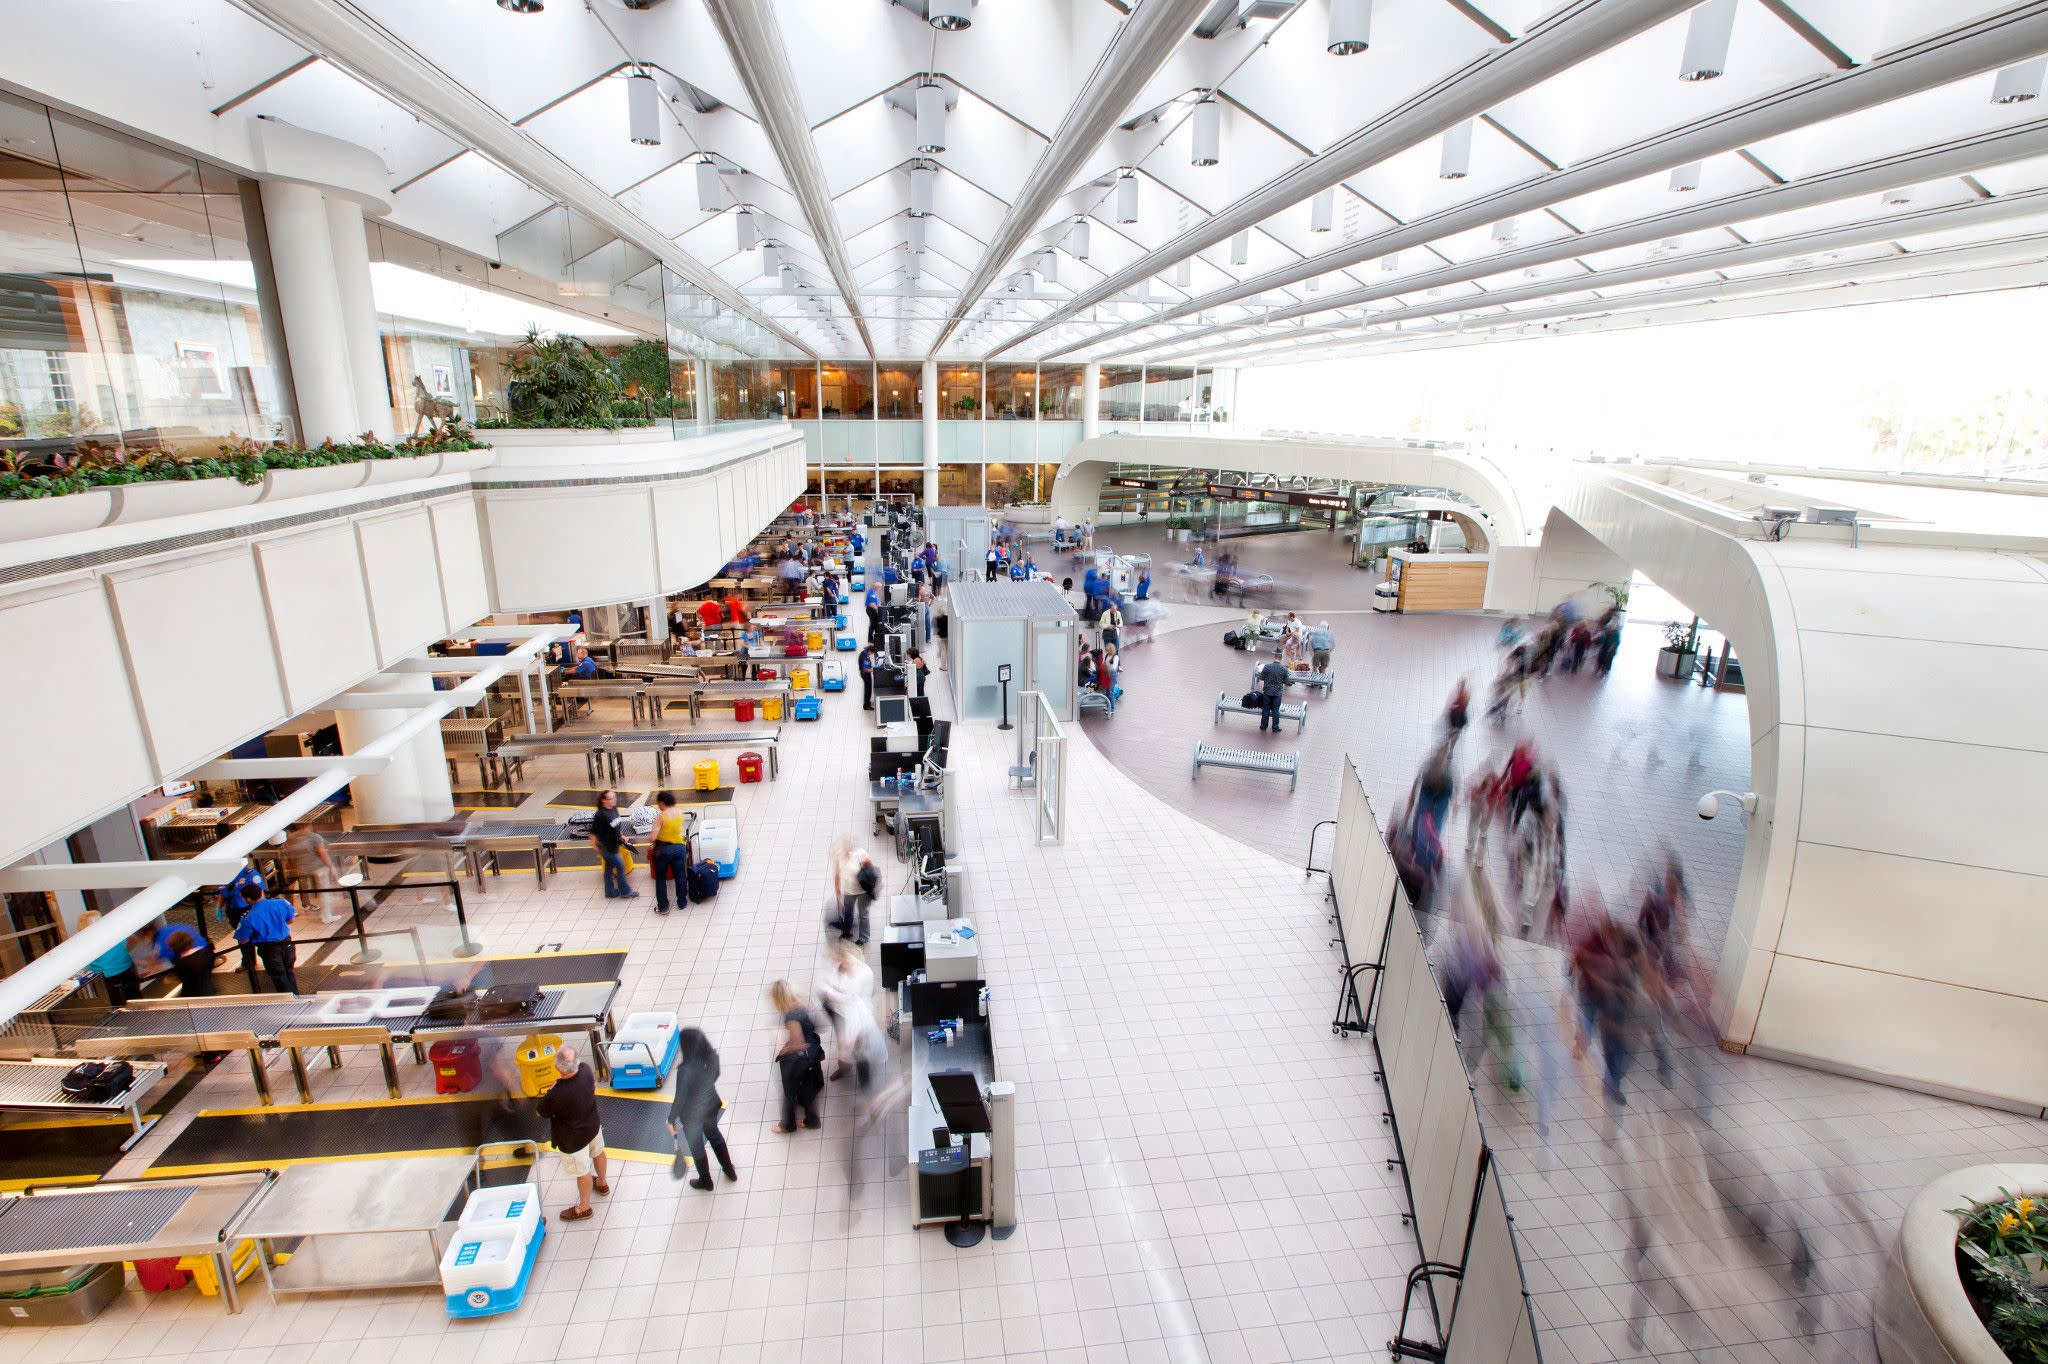 Orlando International Airport Continues to Soar to New Heights